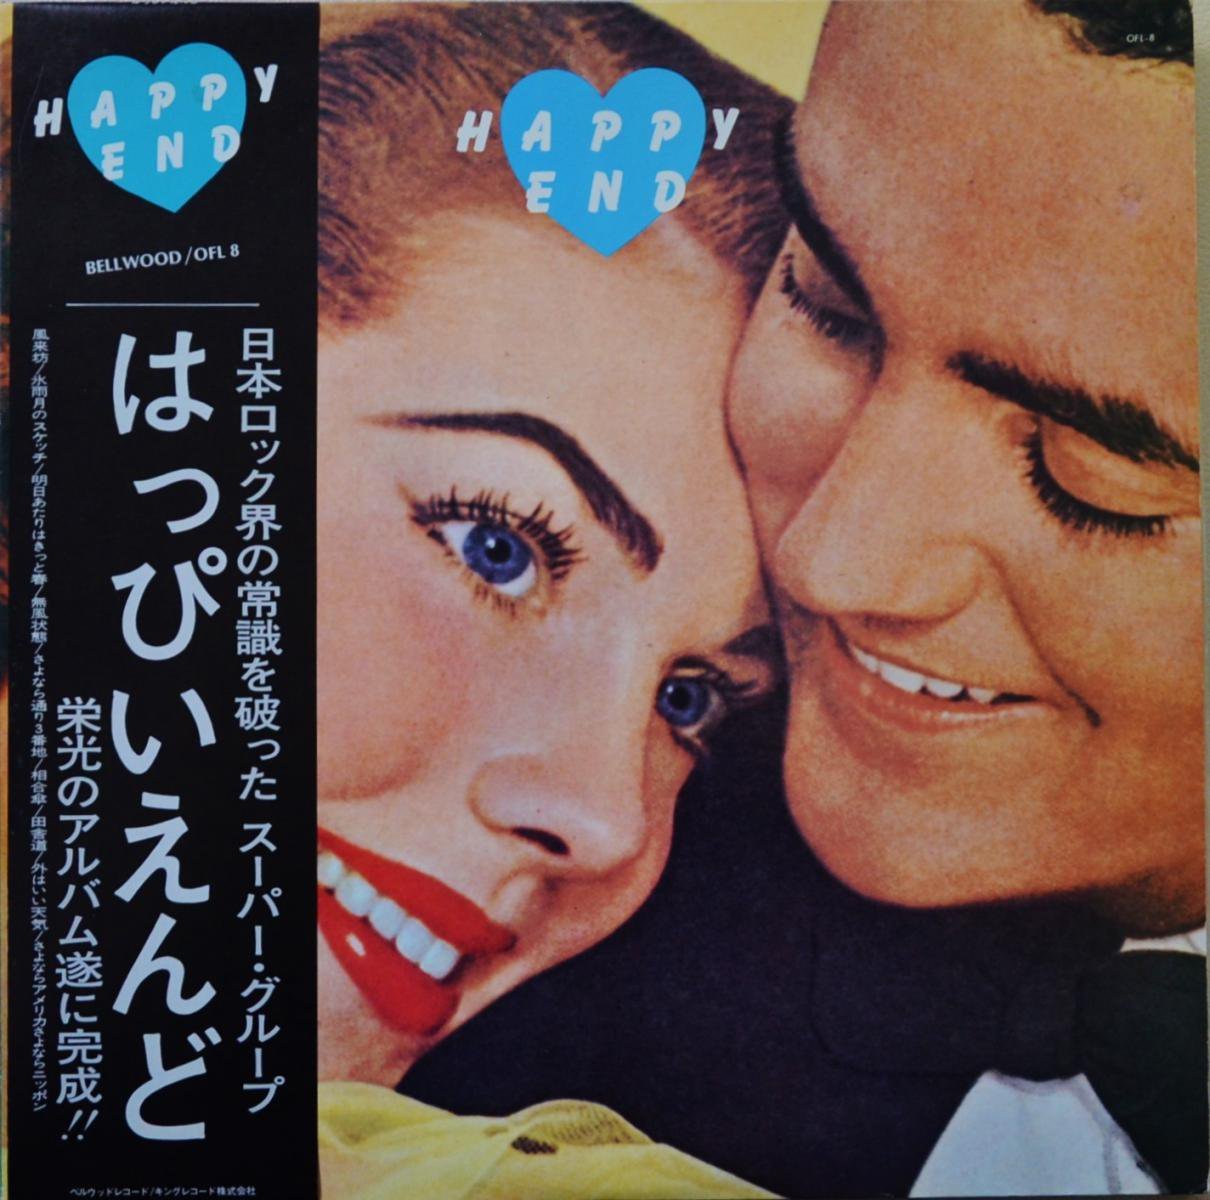 はっぴいえんど HAPPY END / HAPPY END (LP)